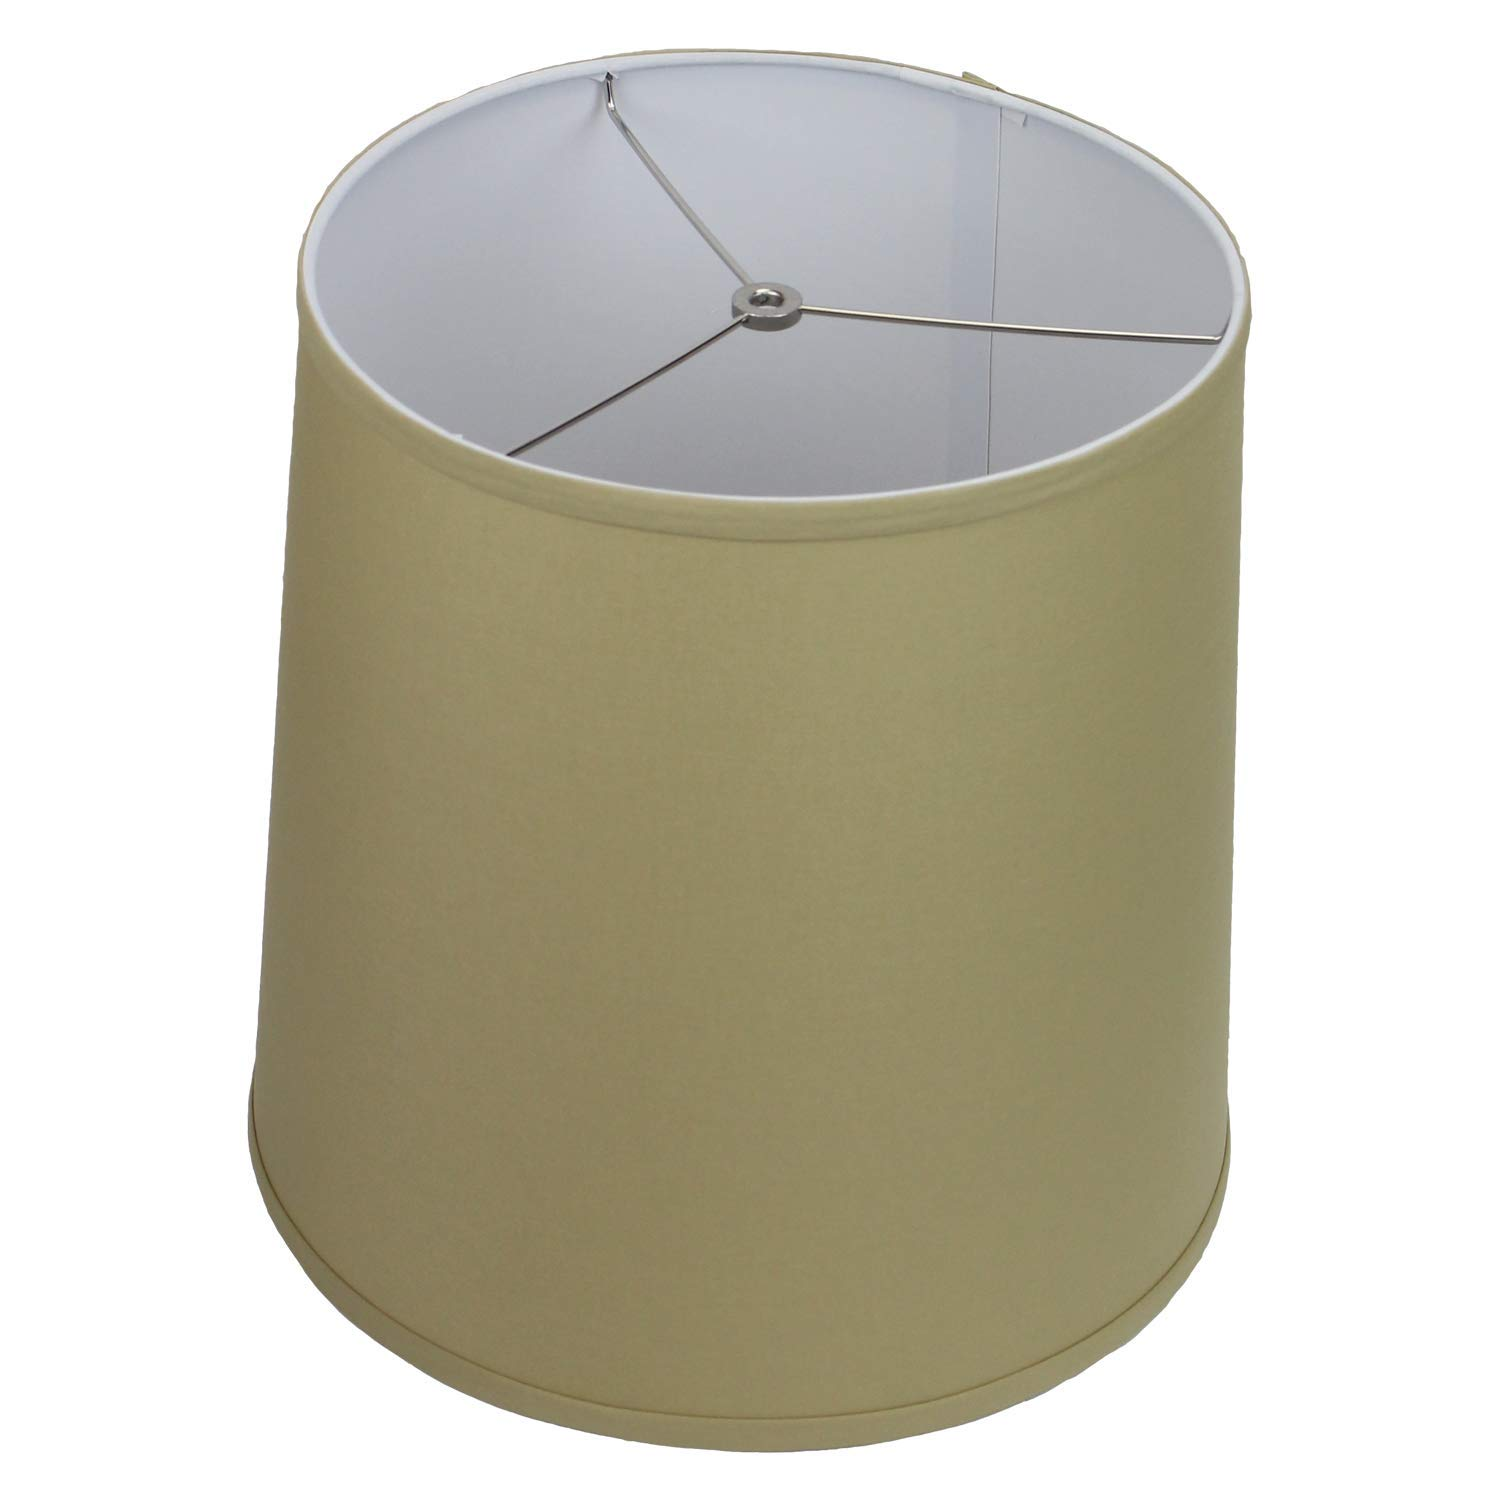 FenchelShades.com Lampshade 13'' Top Diameter x 15'' Bottom Diameter x 15'' Slant Height with Washer (Spider) Attachment for Lamps with a Harp (Straw)